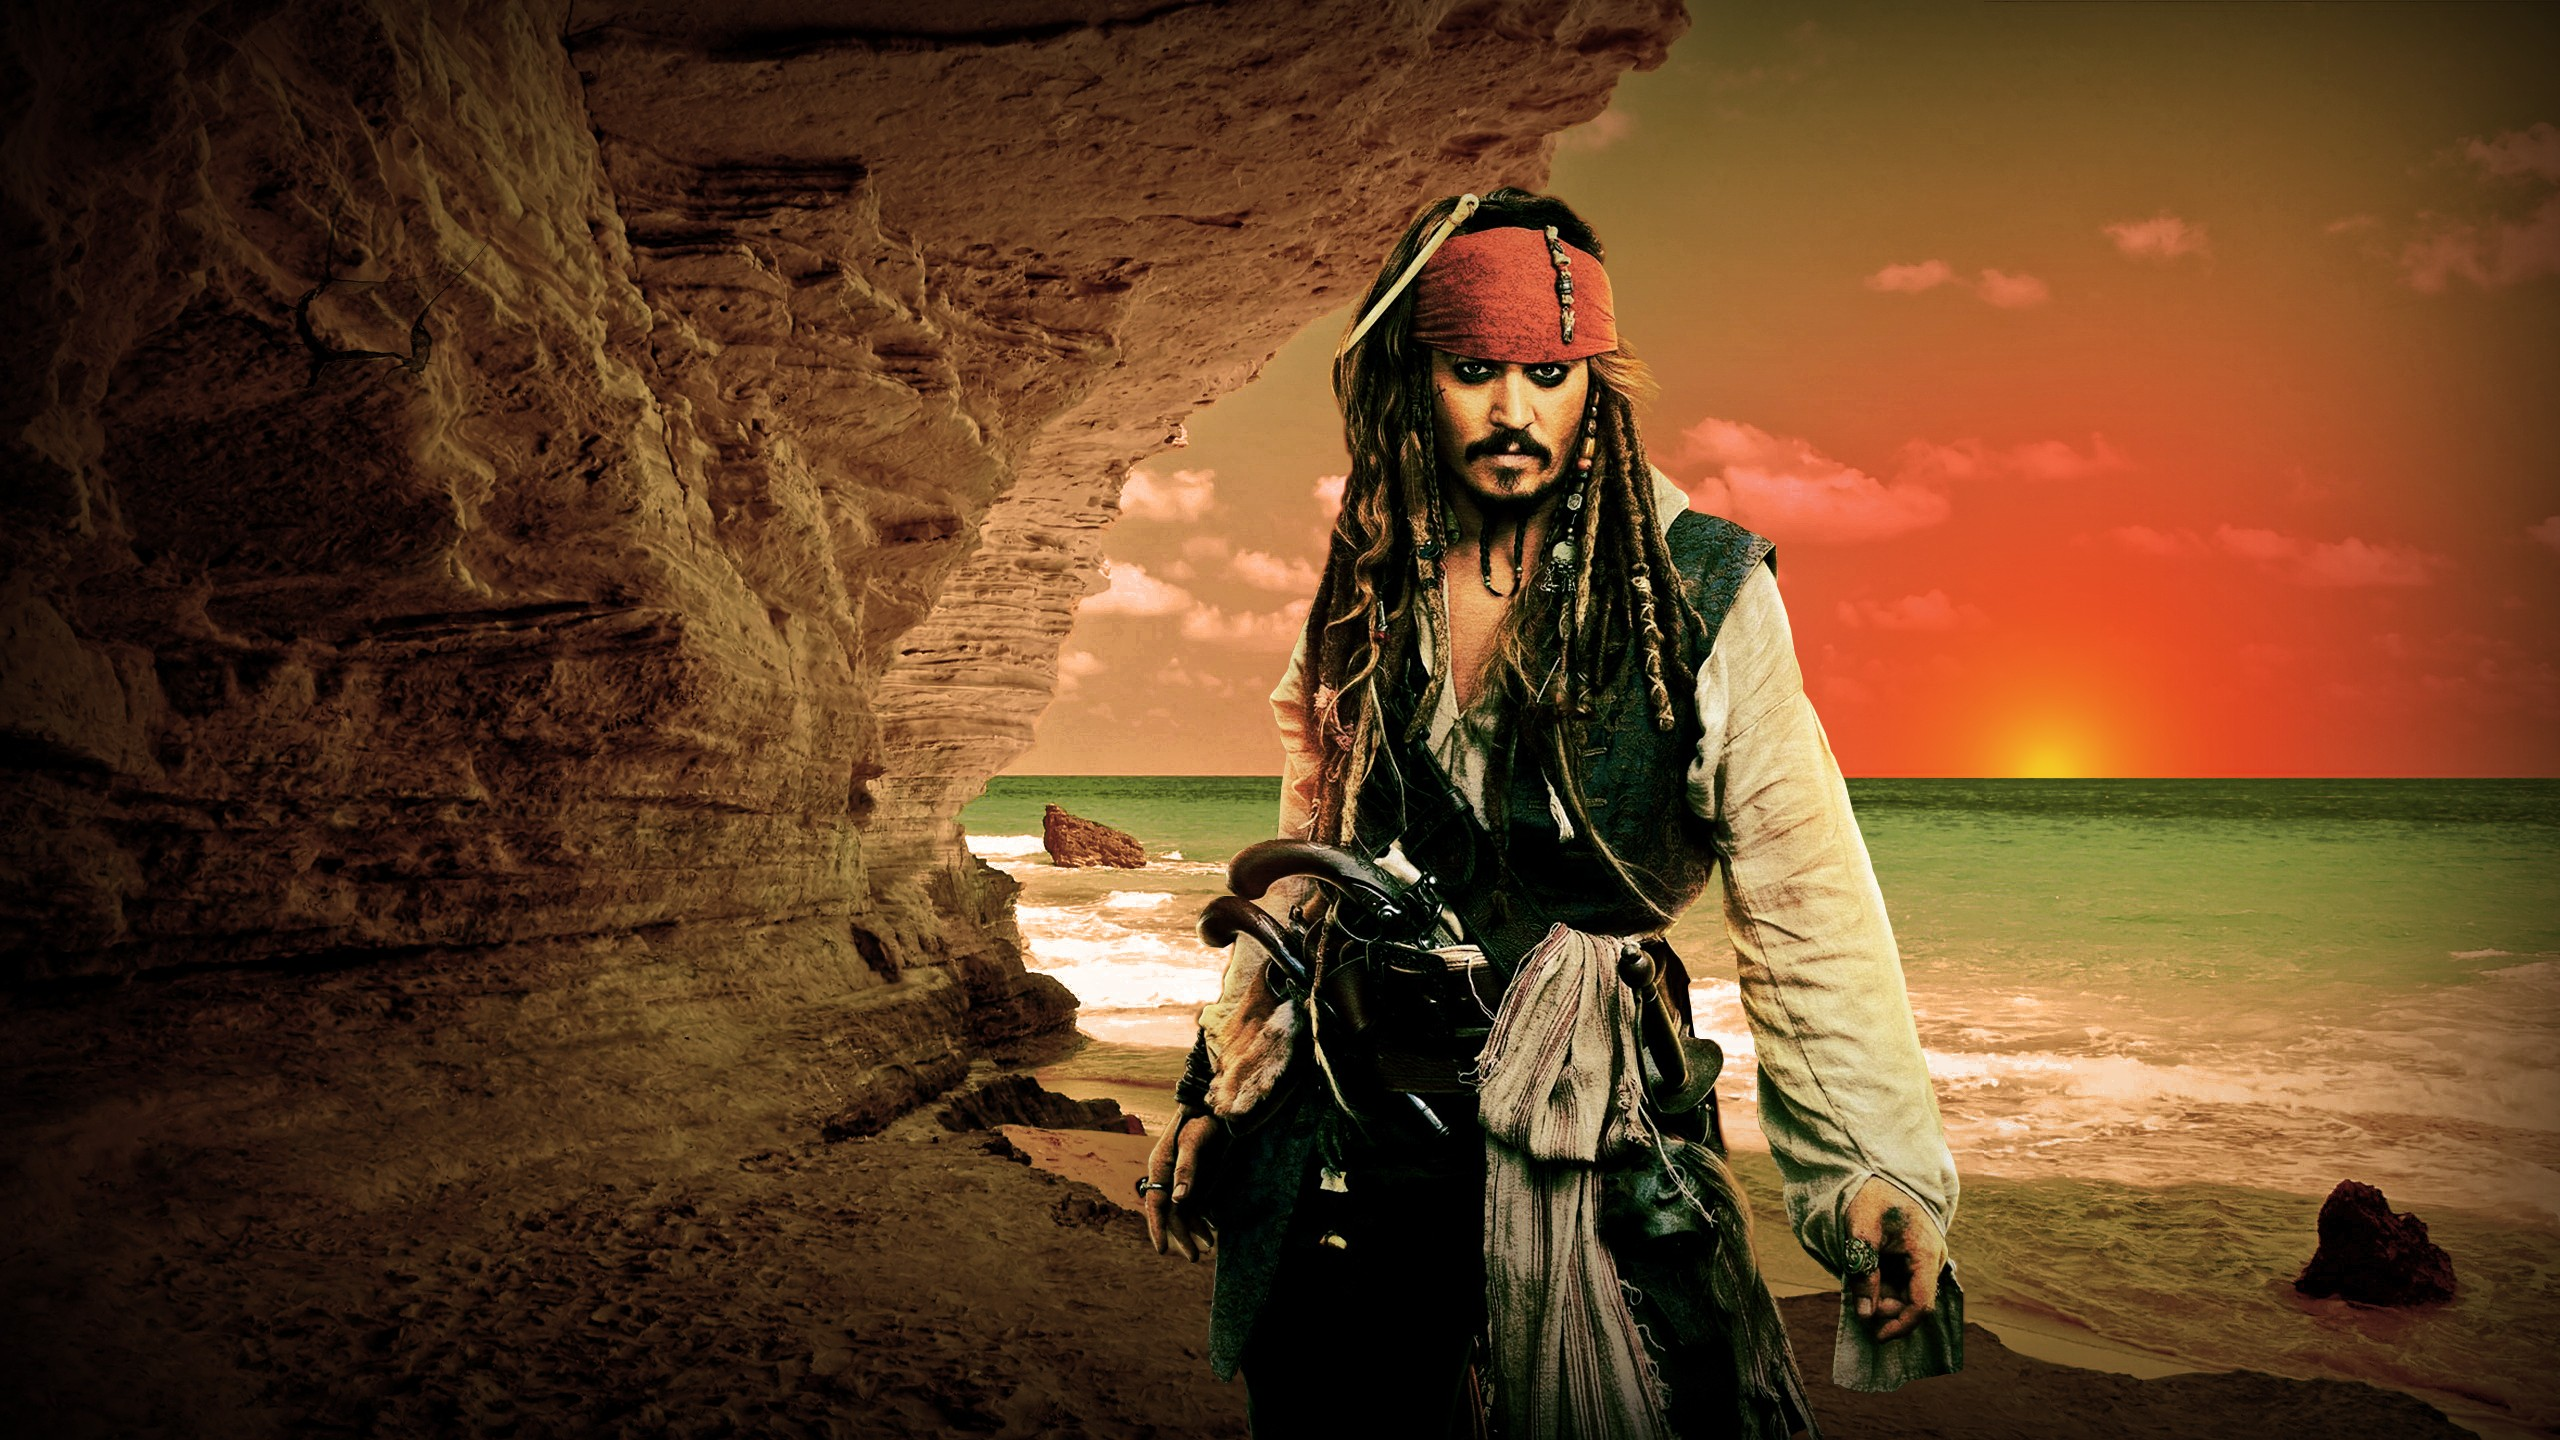 Images of Pirates HD